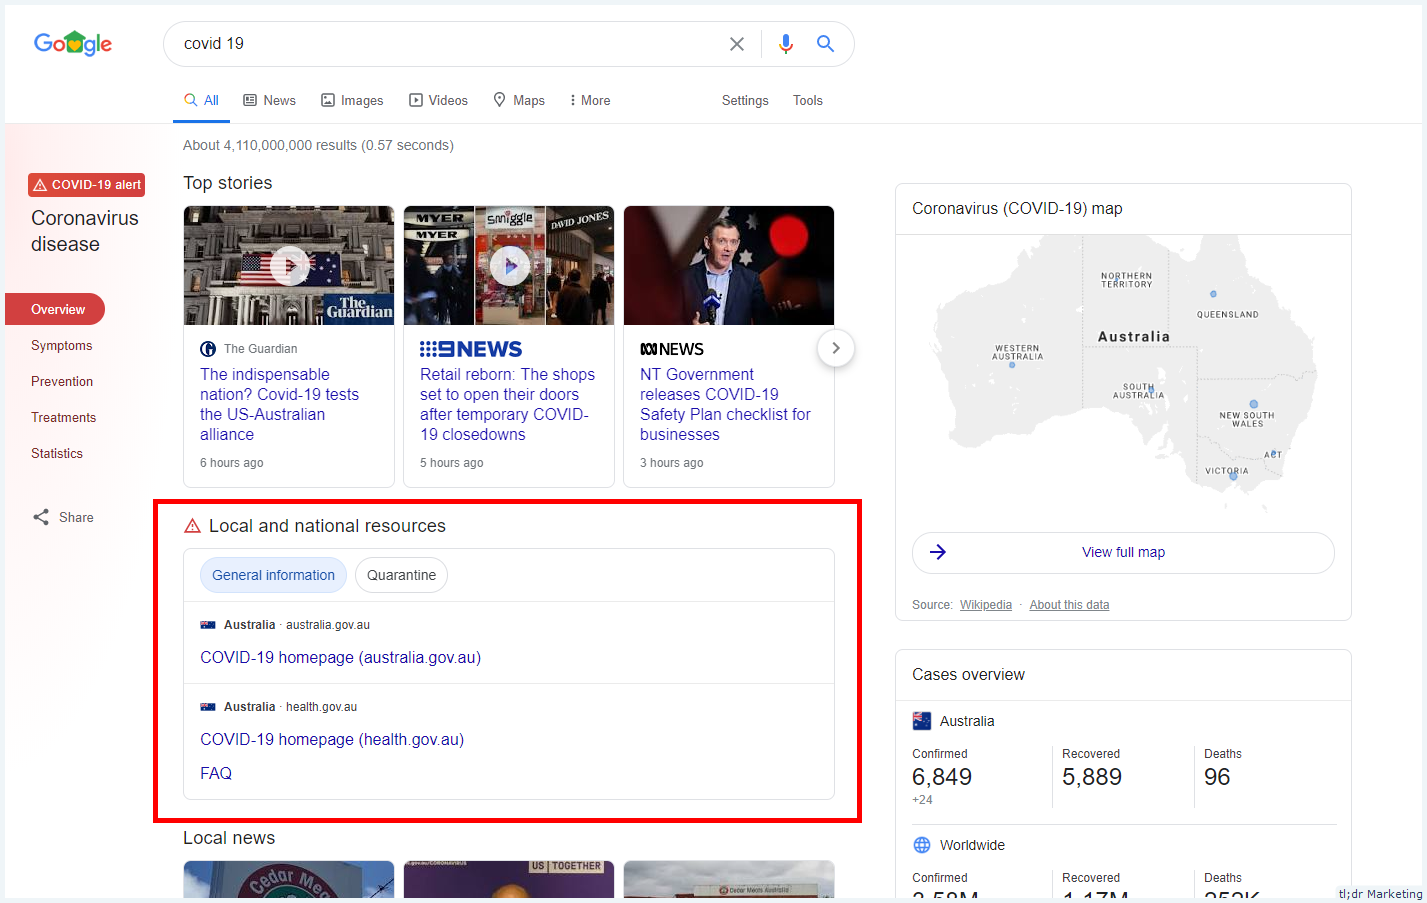 Google Adds a Local and National Resources SERP Feature for COVID-19 Searches